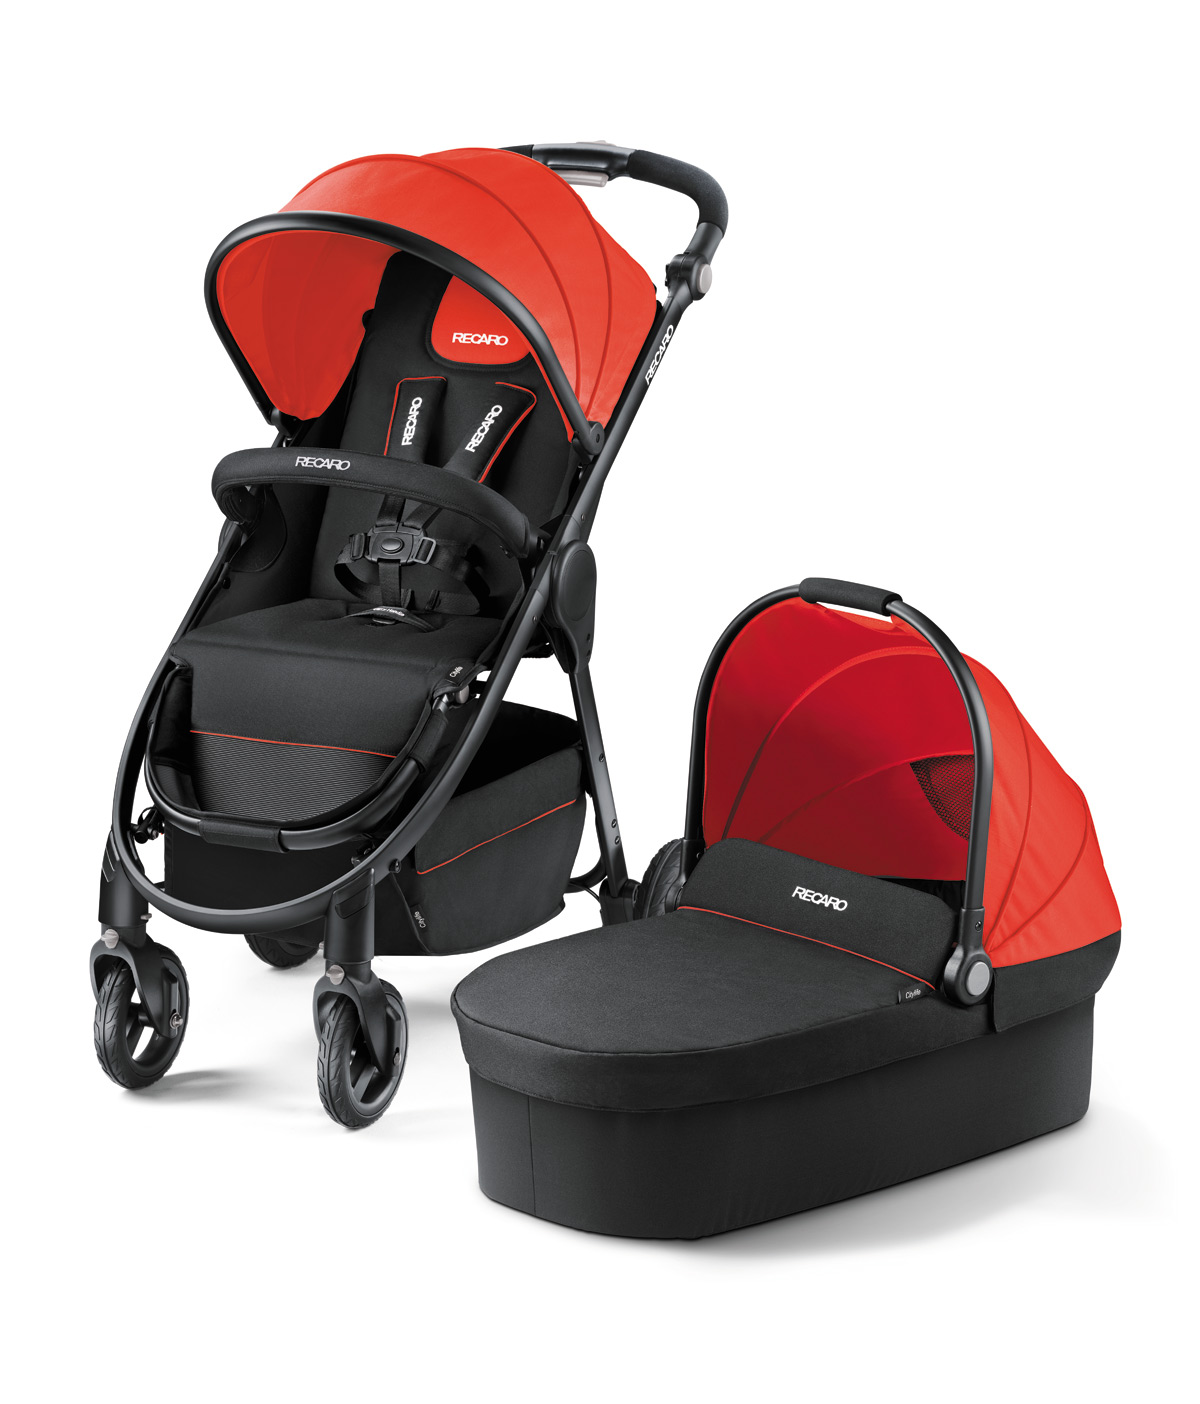 Kinderwagen Rad Aufpumpen Babywaren24 Recaro 2 In 1 Kinderwagen Citylife Purchase